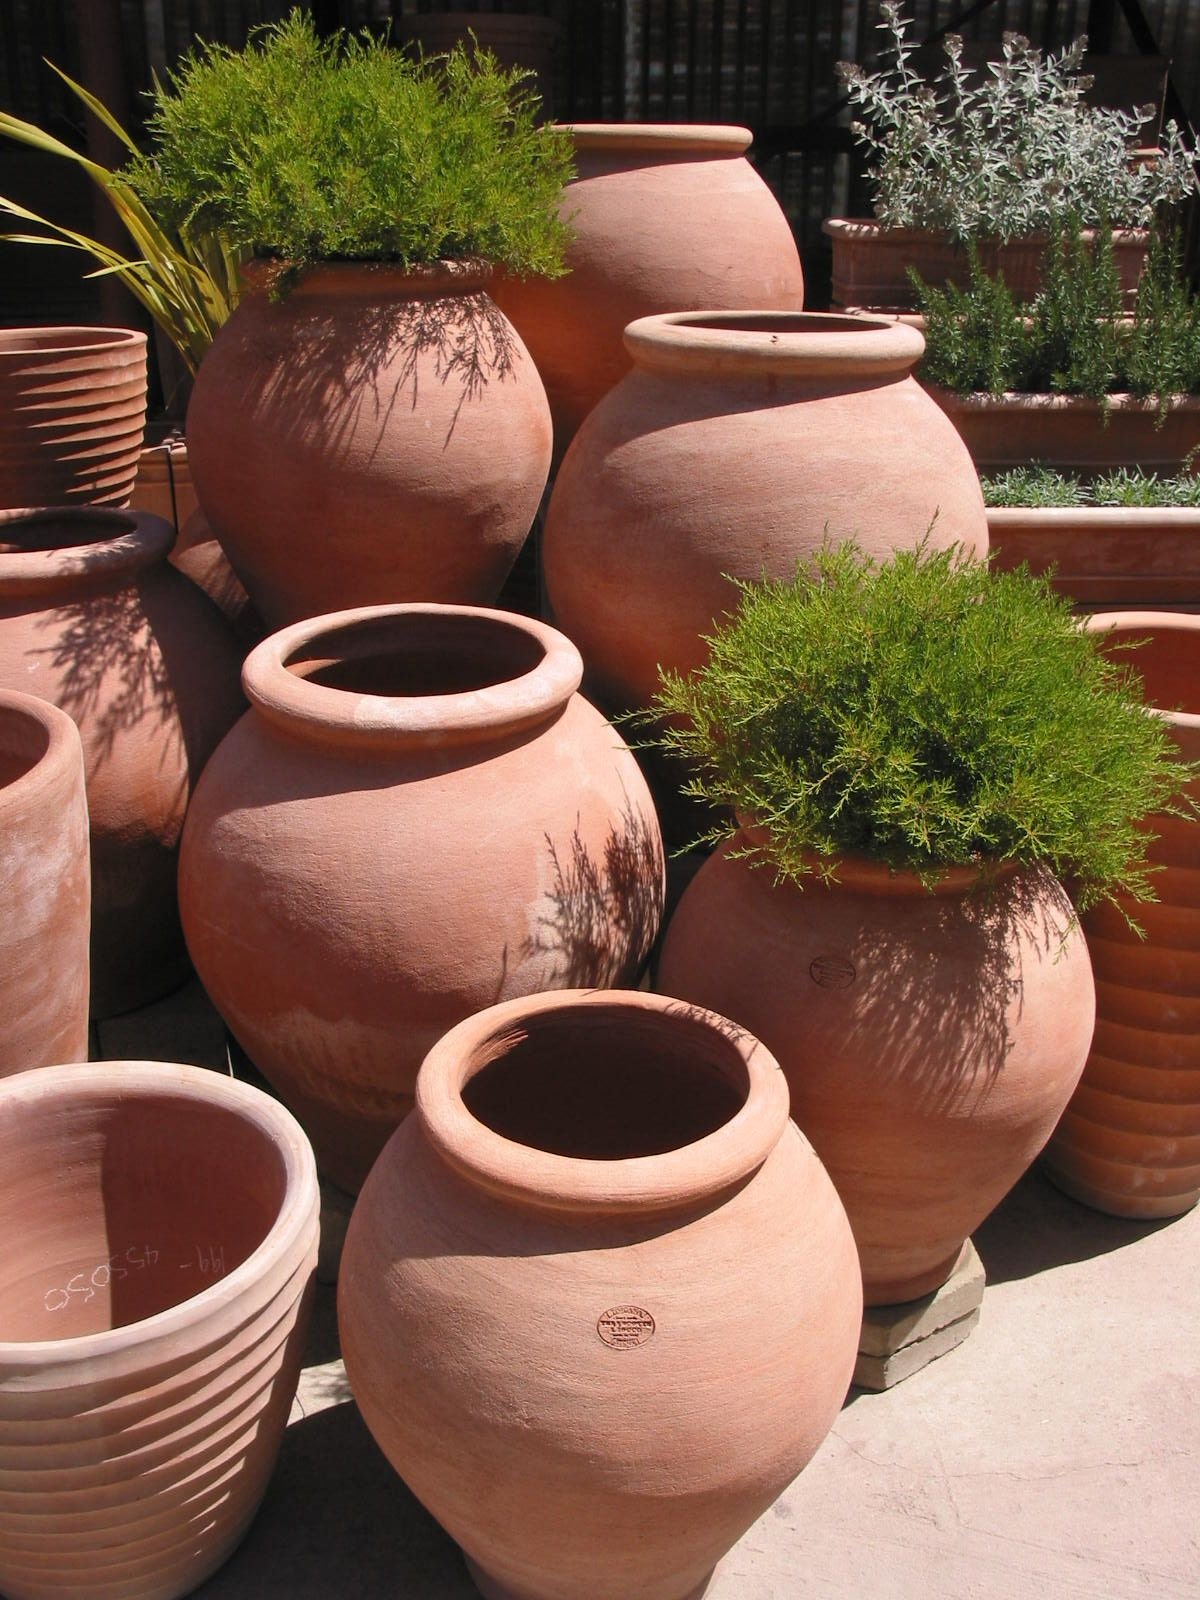 Eye of the Day is the exclusive U.S. importer and distributor of Terrecotte San Rocco terra cotta pots and maintains a substantial inventory of sizes and styles, specializing in large terracotta planters. This frost-proof Italian terracotta pottery, made from Galestro clay and fired at high temperatures, is notable for its quality and durability. We carry... Continue Reading →